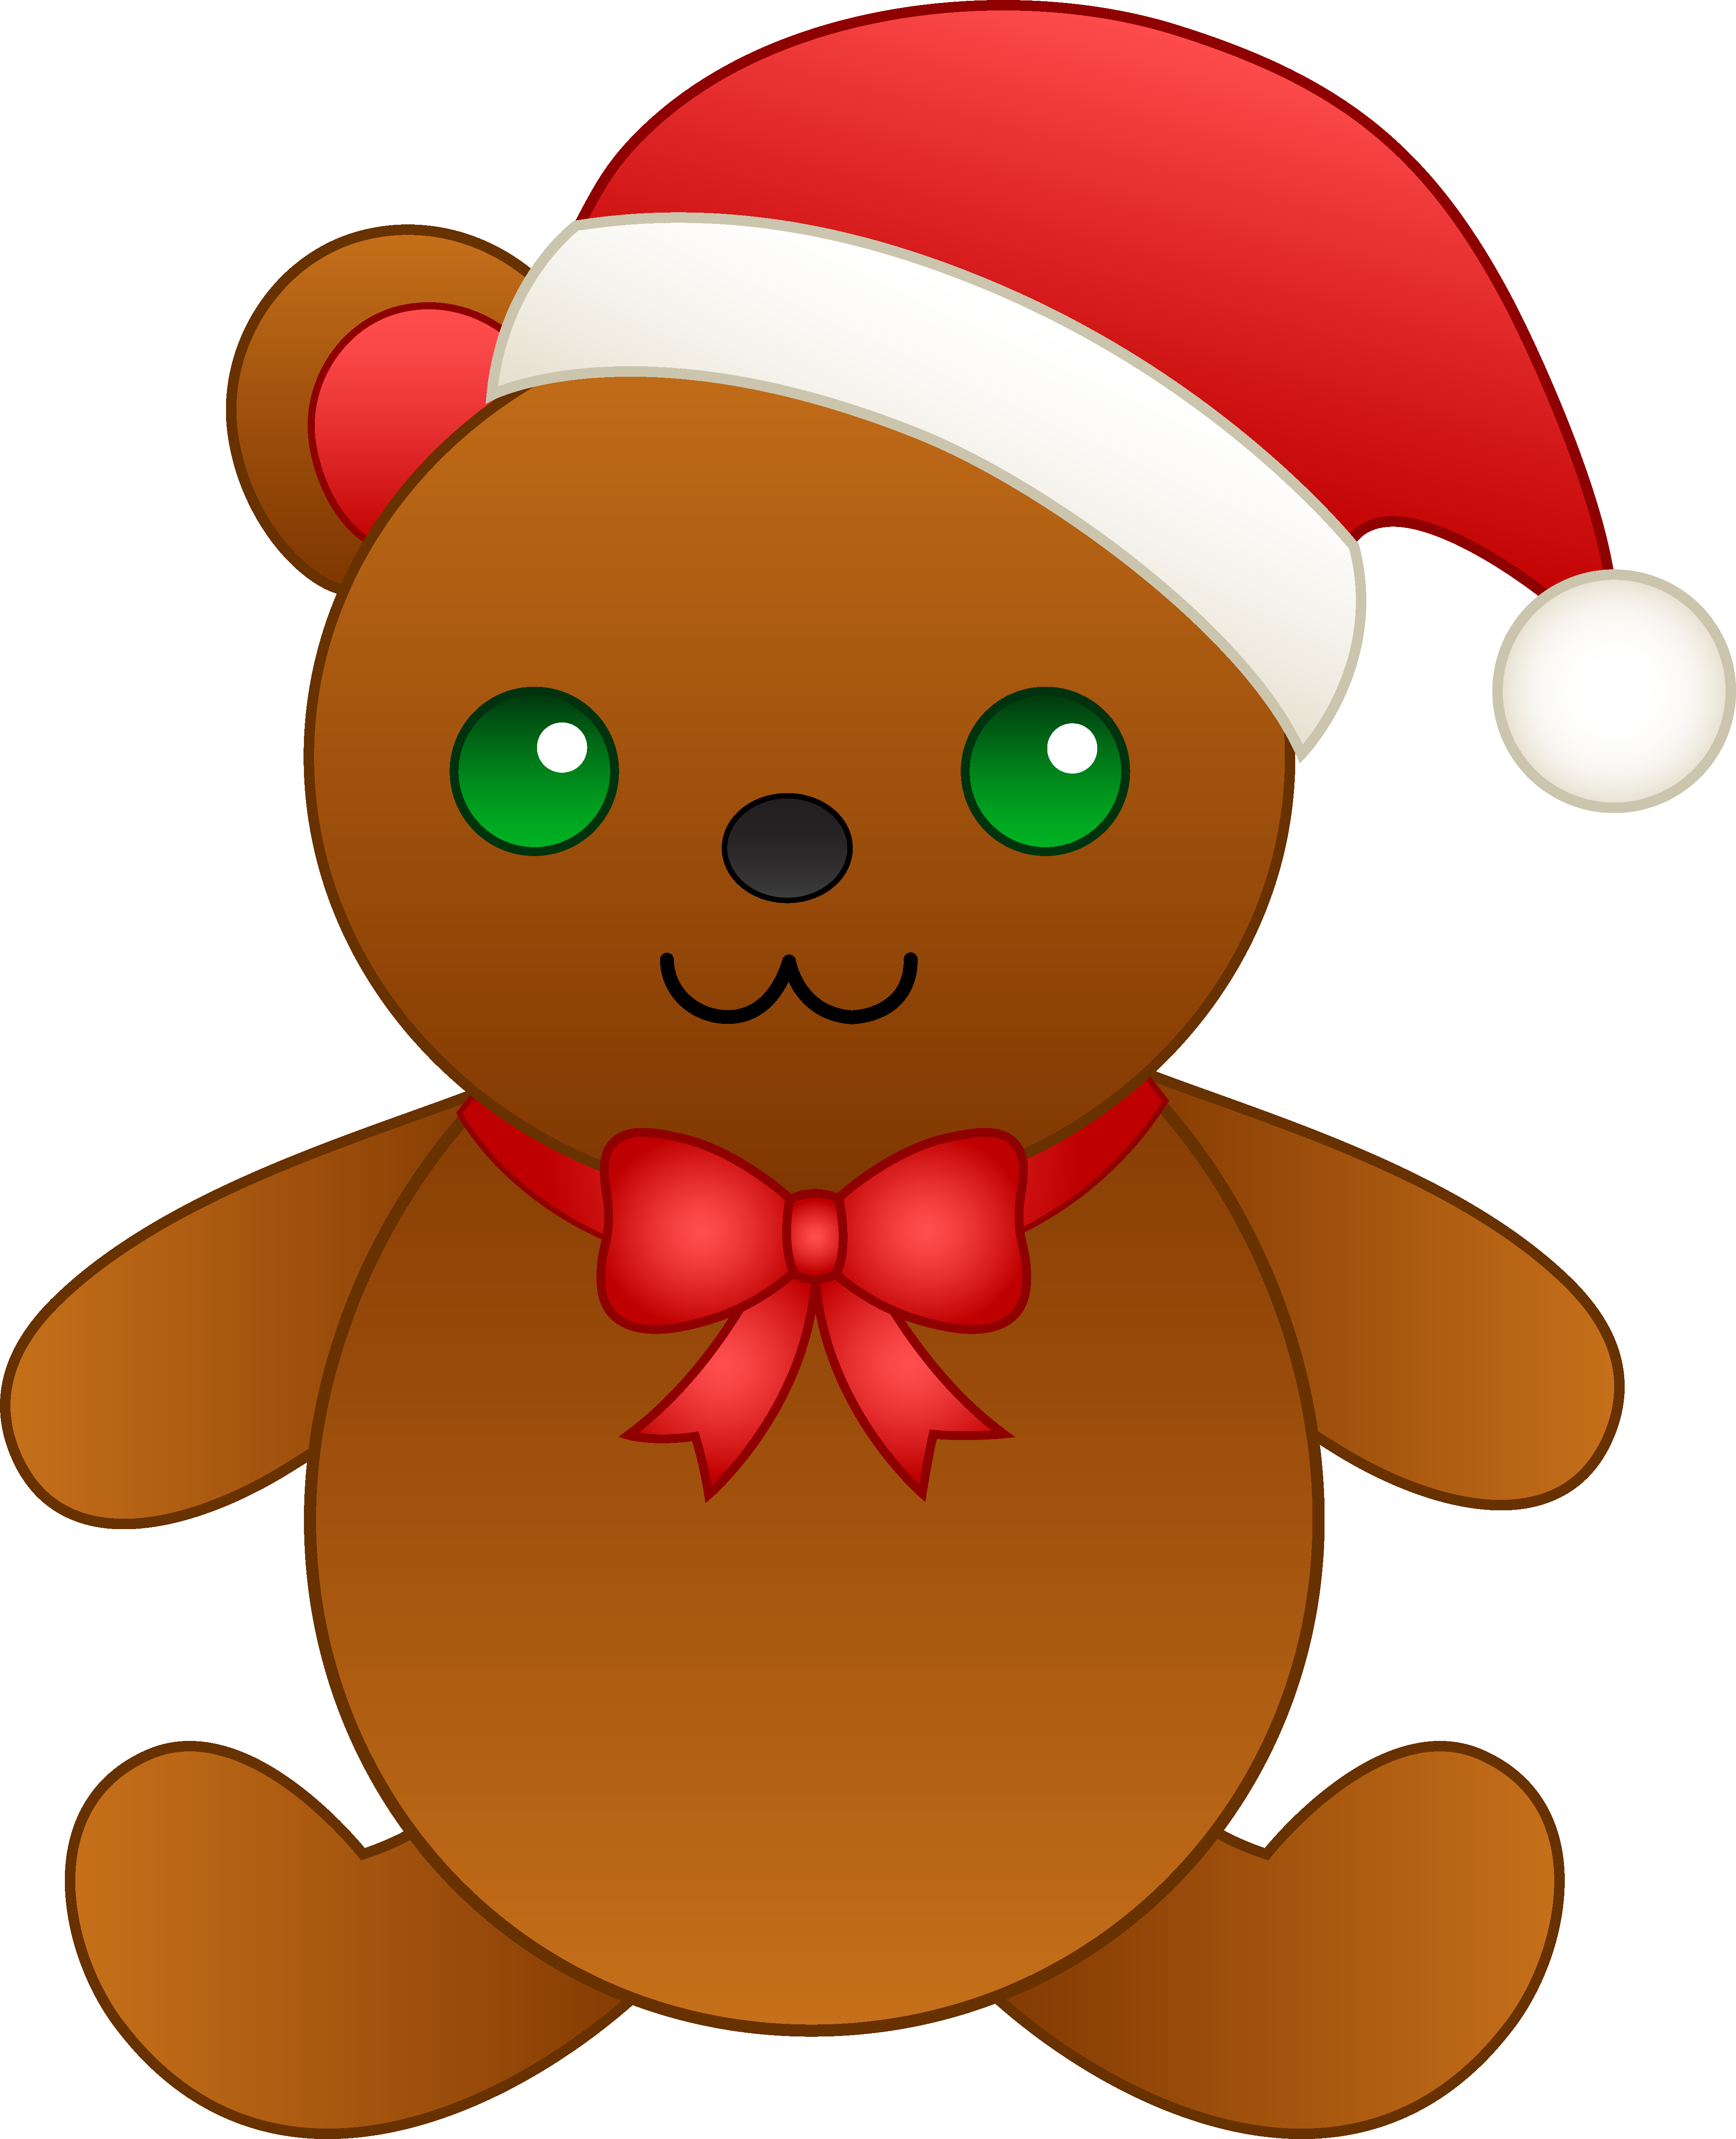 Exercising clipart simple. Christmas teddy bear with